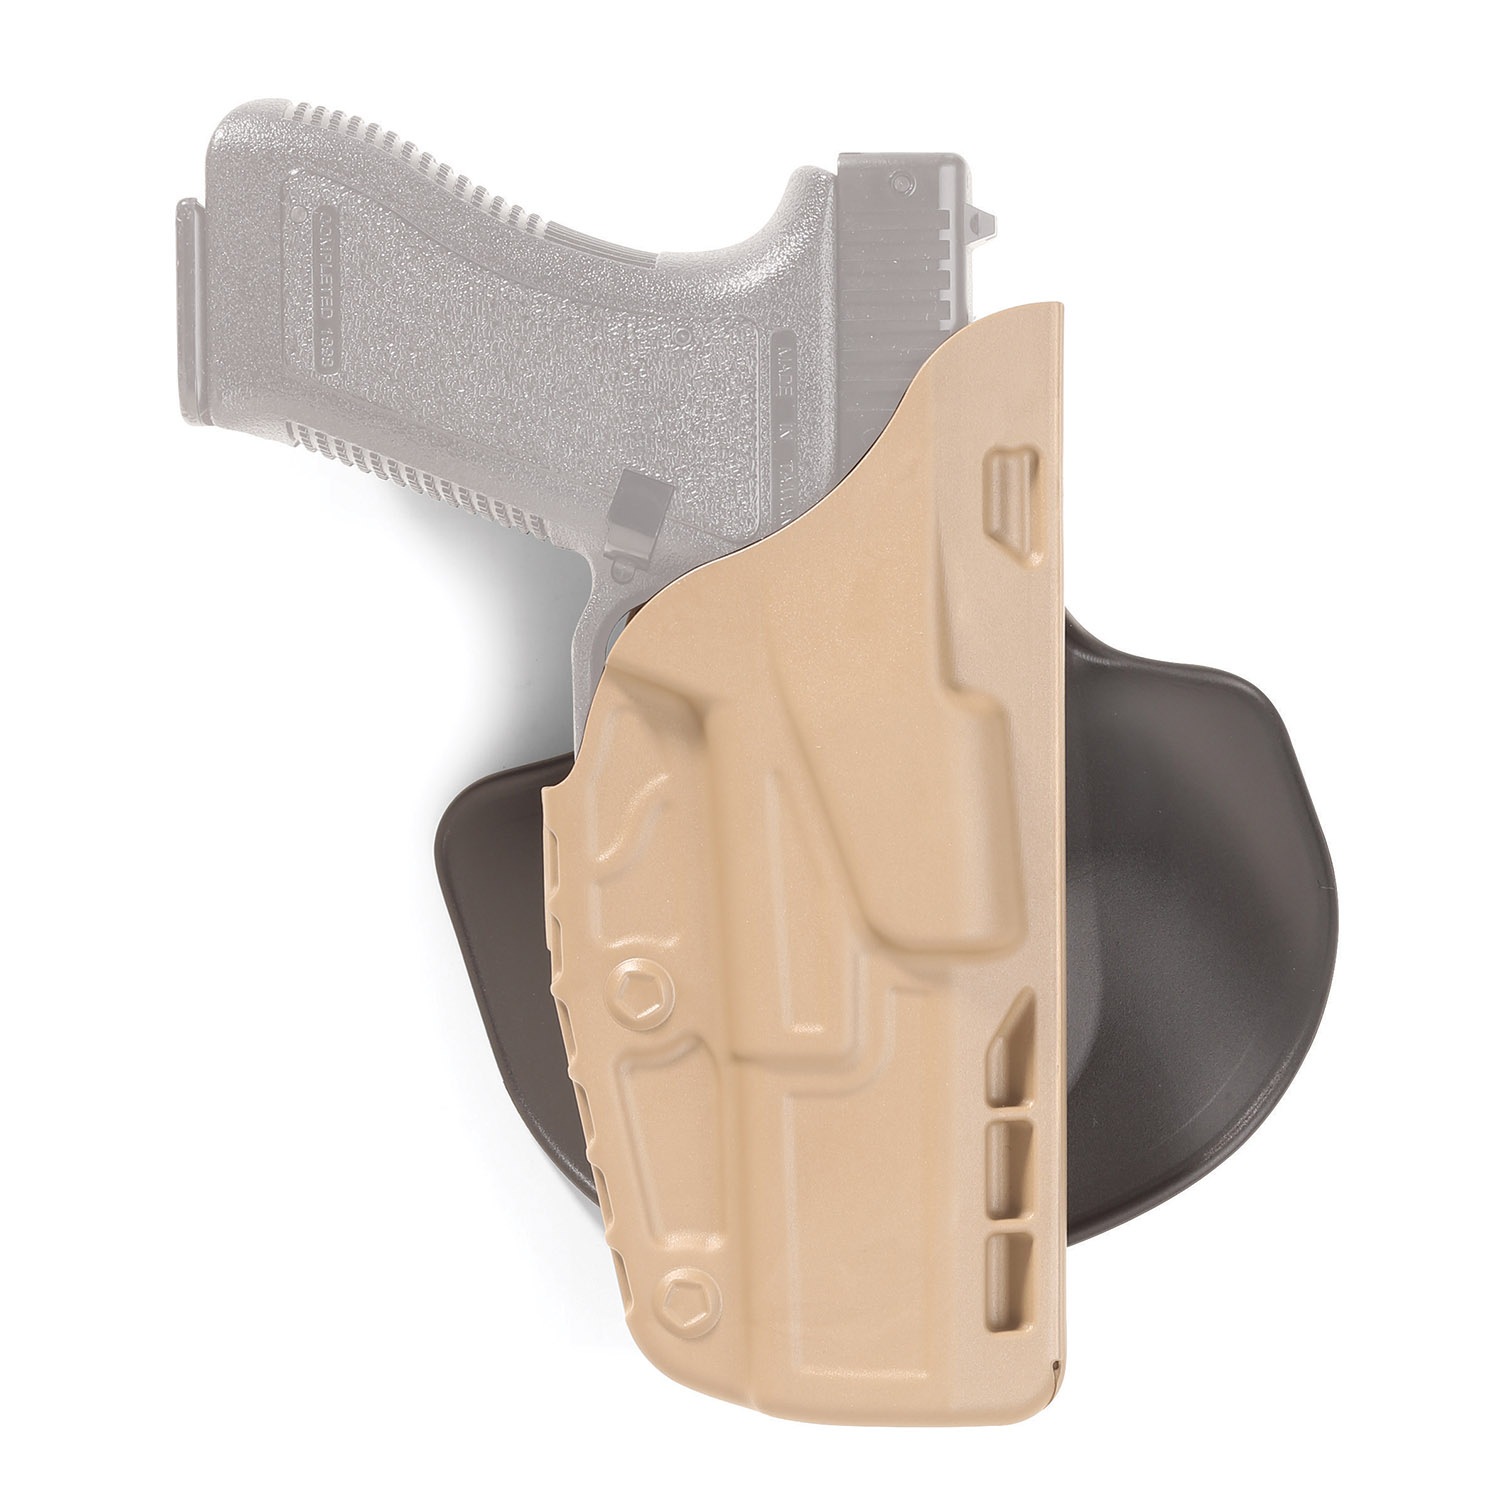 Safariland 7TS 7378 ALS Concealment Paddle Holster